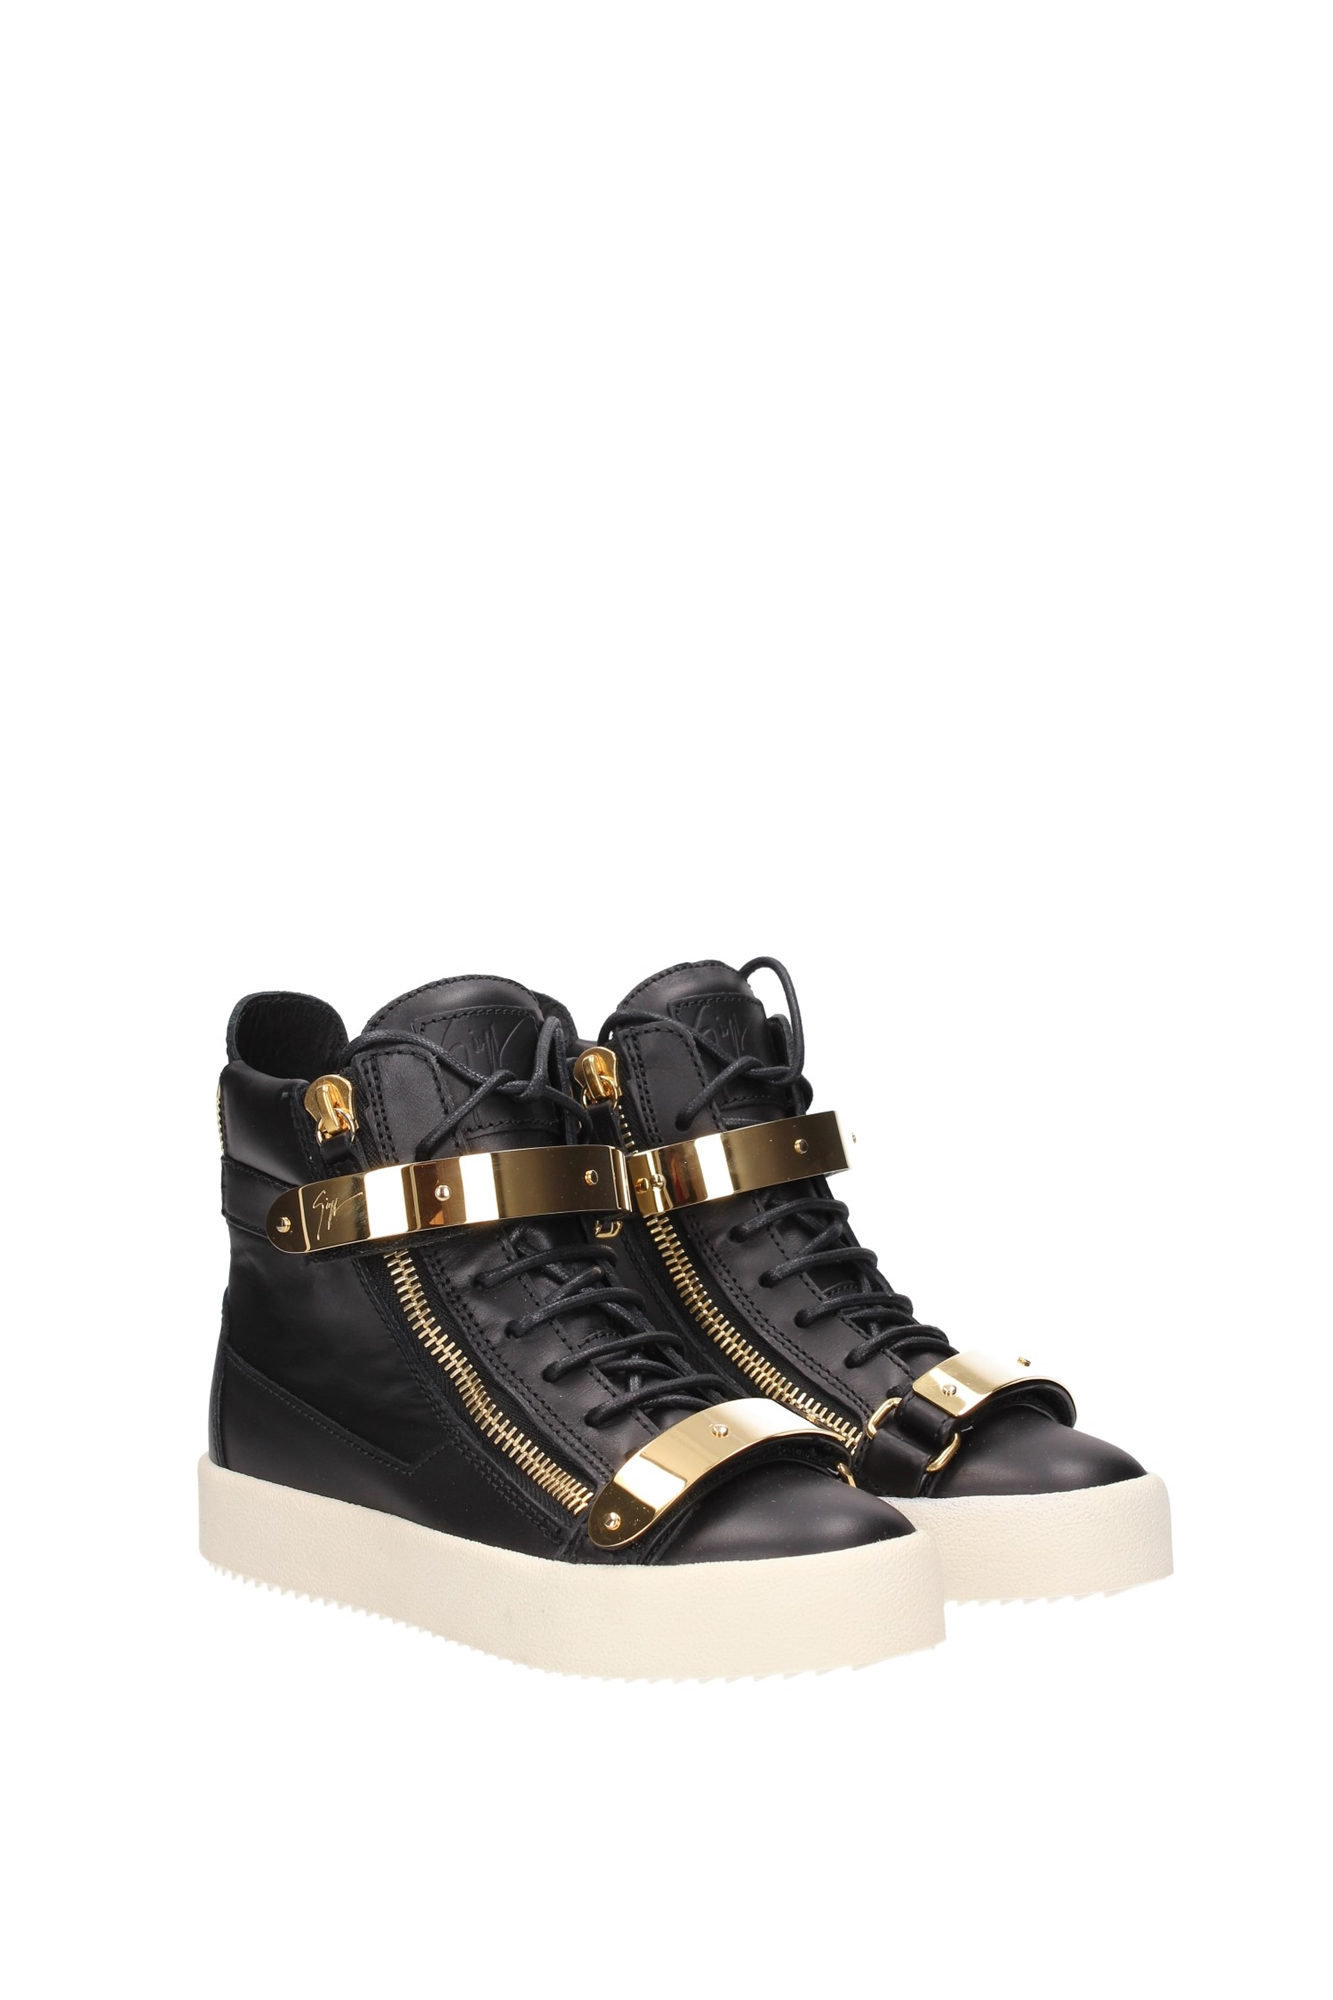 sneakers giuseppe zanotti damen leder schwarz rs5029maynero. Black Bedroom Furniture Sets. Home Design Ideas